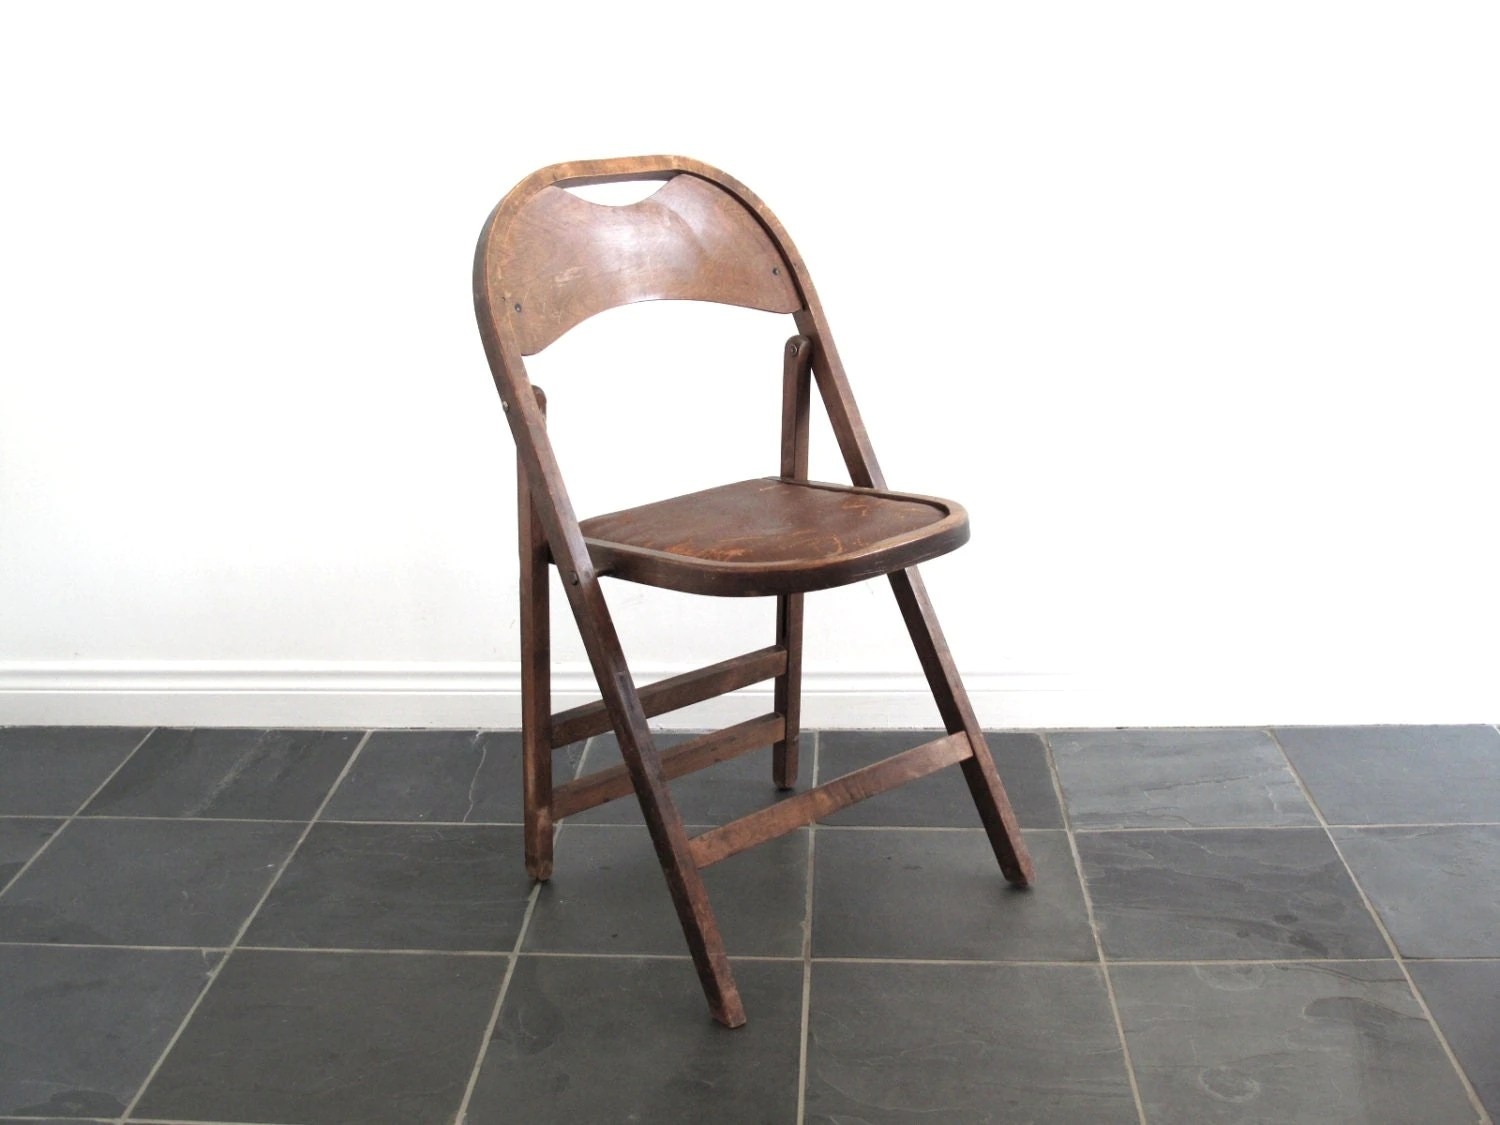 Antique Wooden Chair Antique Wood Folding Chair Wood Art Deco By Snapshotvintage